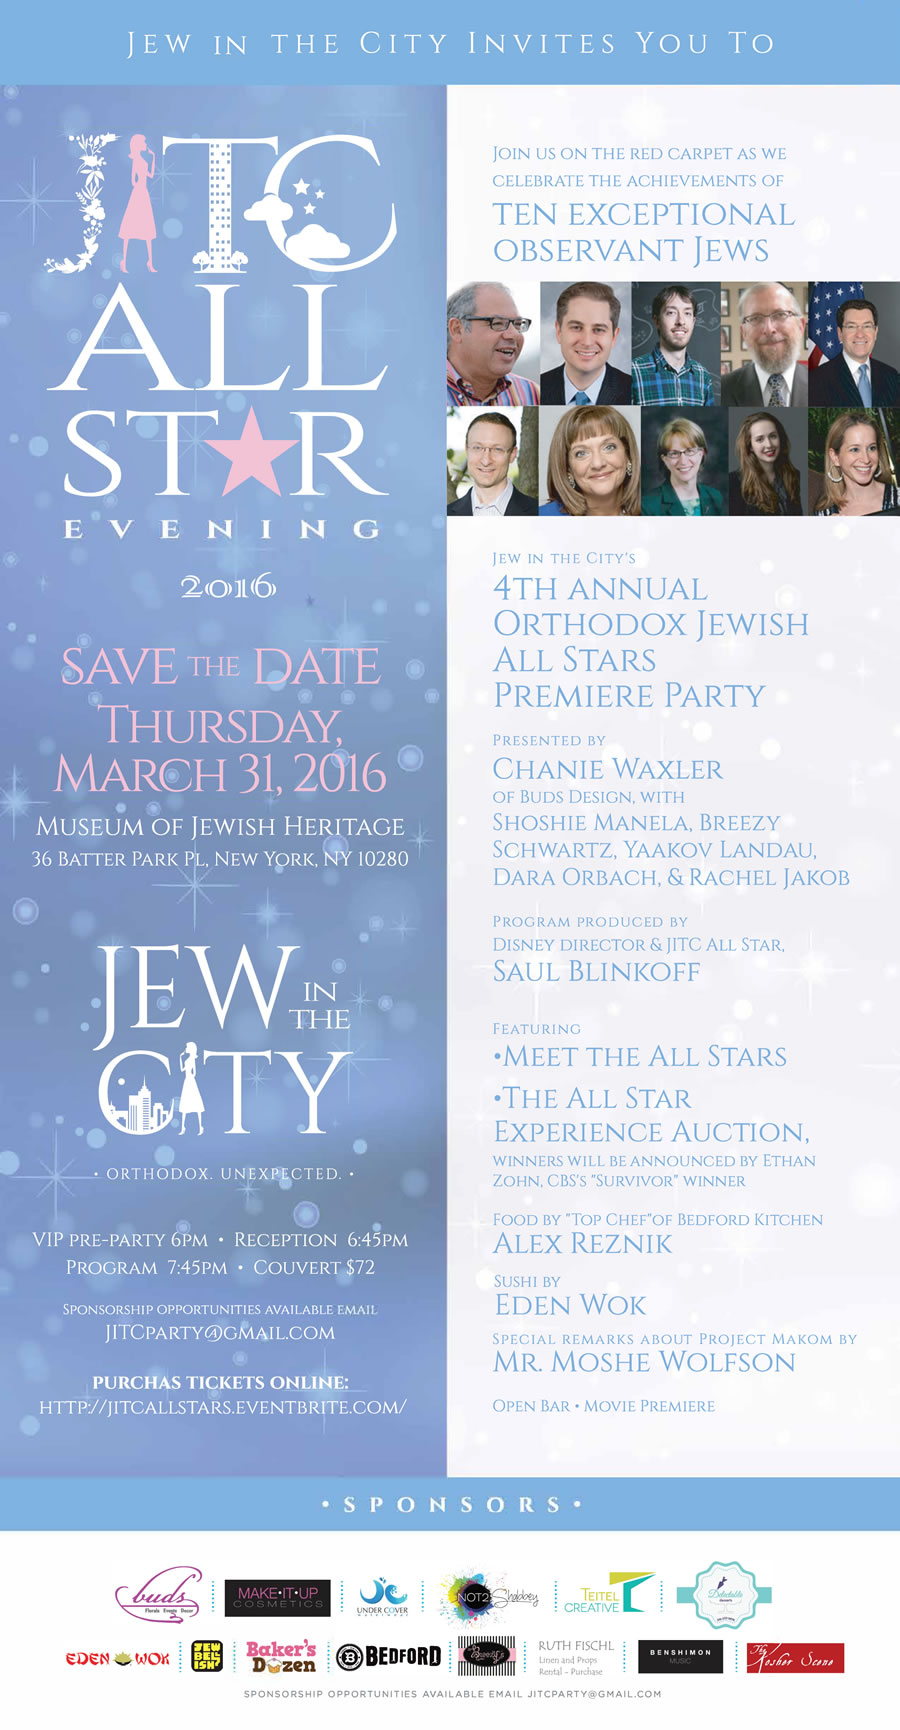 JITCplaybill-email – Jew in the City